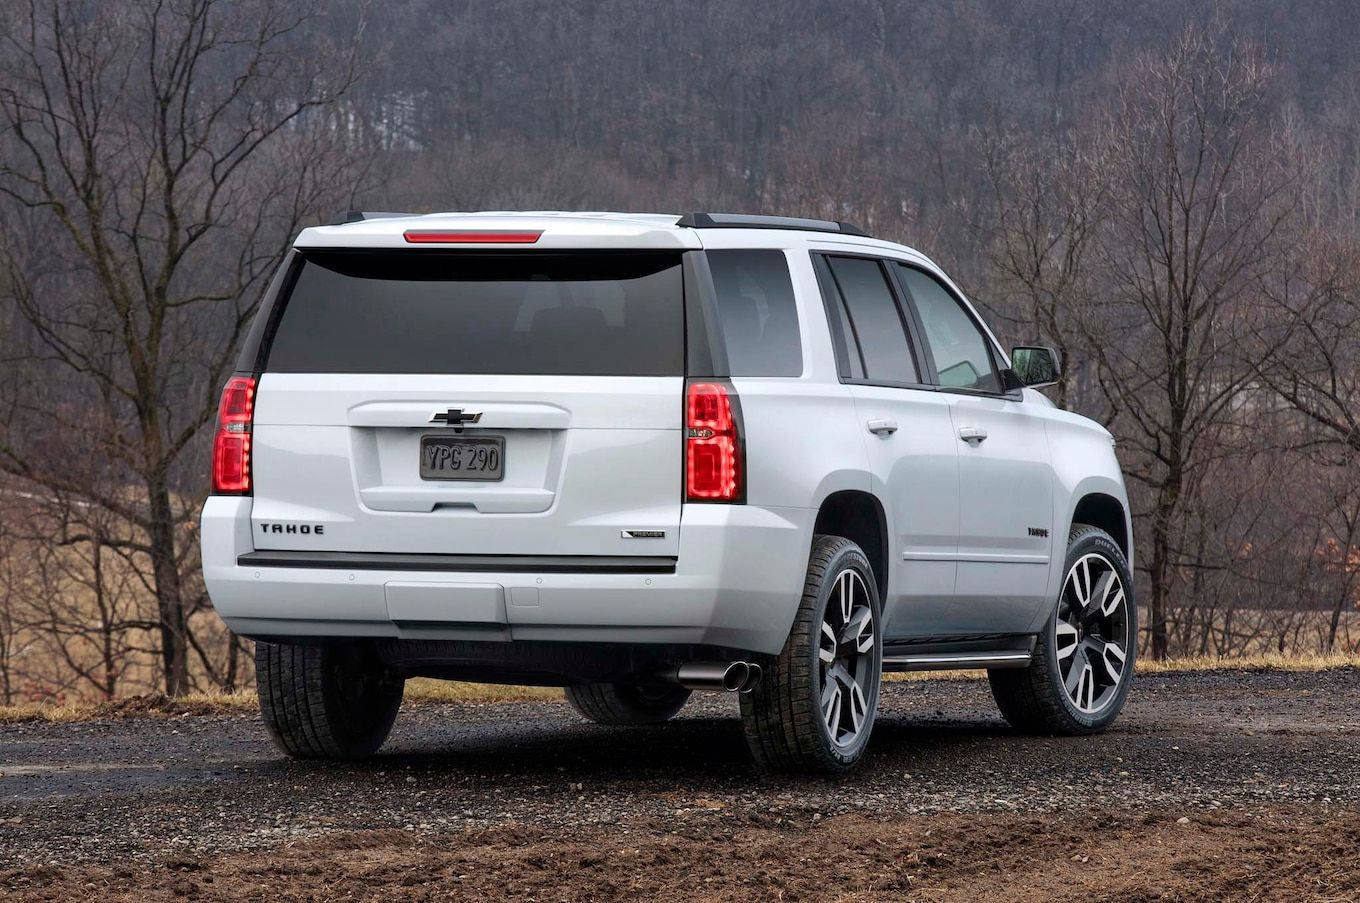 2018 Chevrolet Tahoe And Suburban Rst First Look Motor Trend Di 2020 Chevrolet Tahoe Chevrolet General Motors